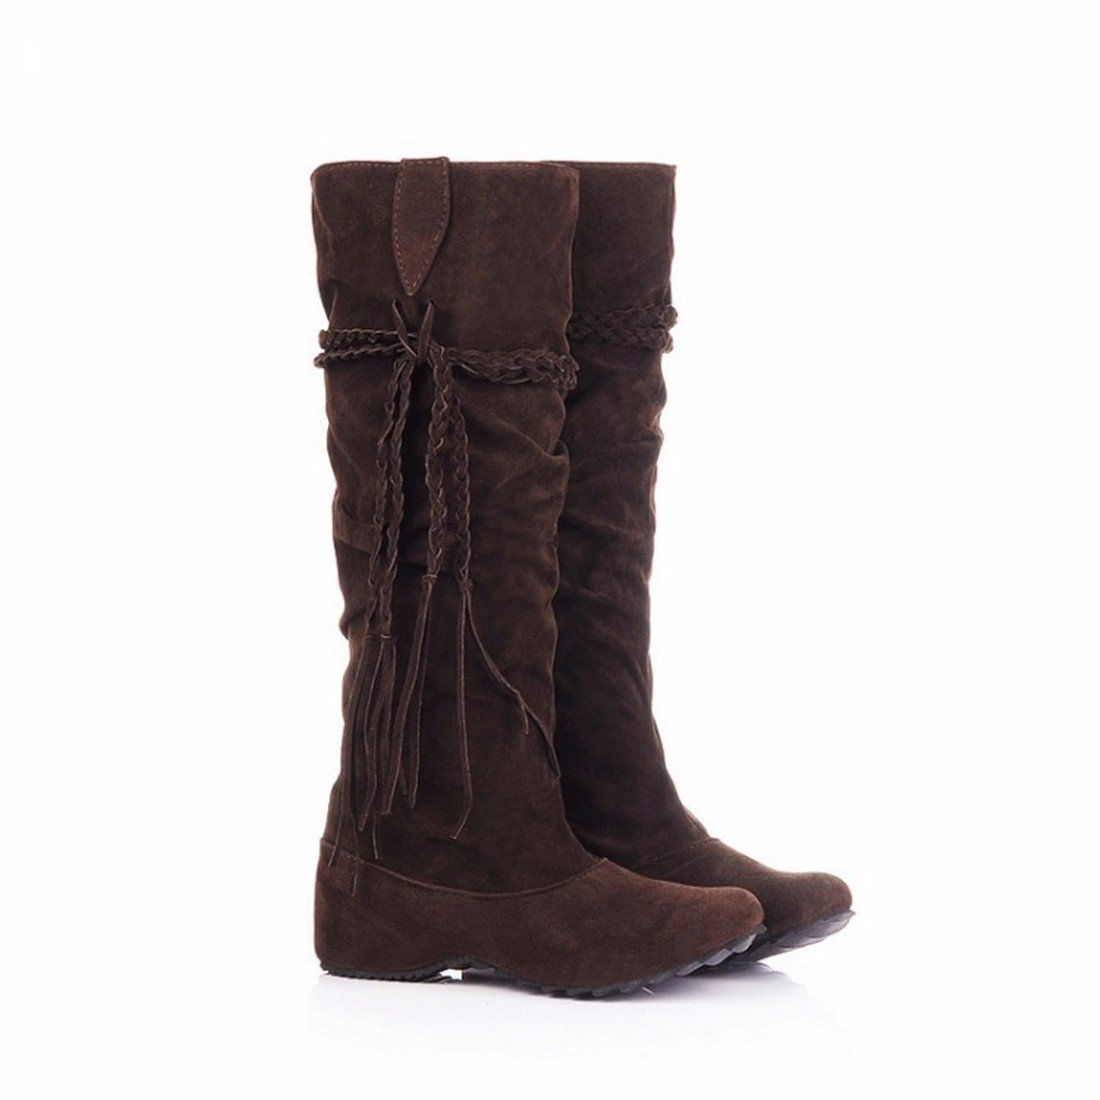 The increase in size of winter scrub fringed boots high boots students US6 / EU36 / UK4 / CN36|Brown (suede)